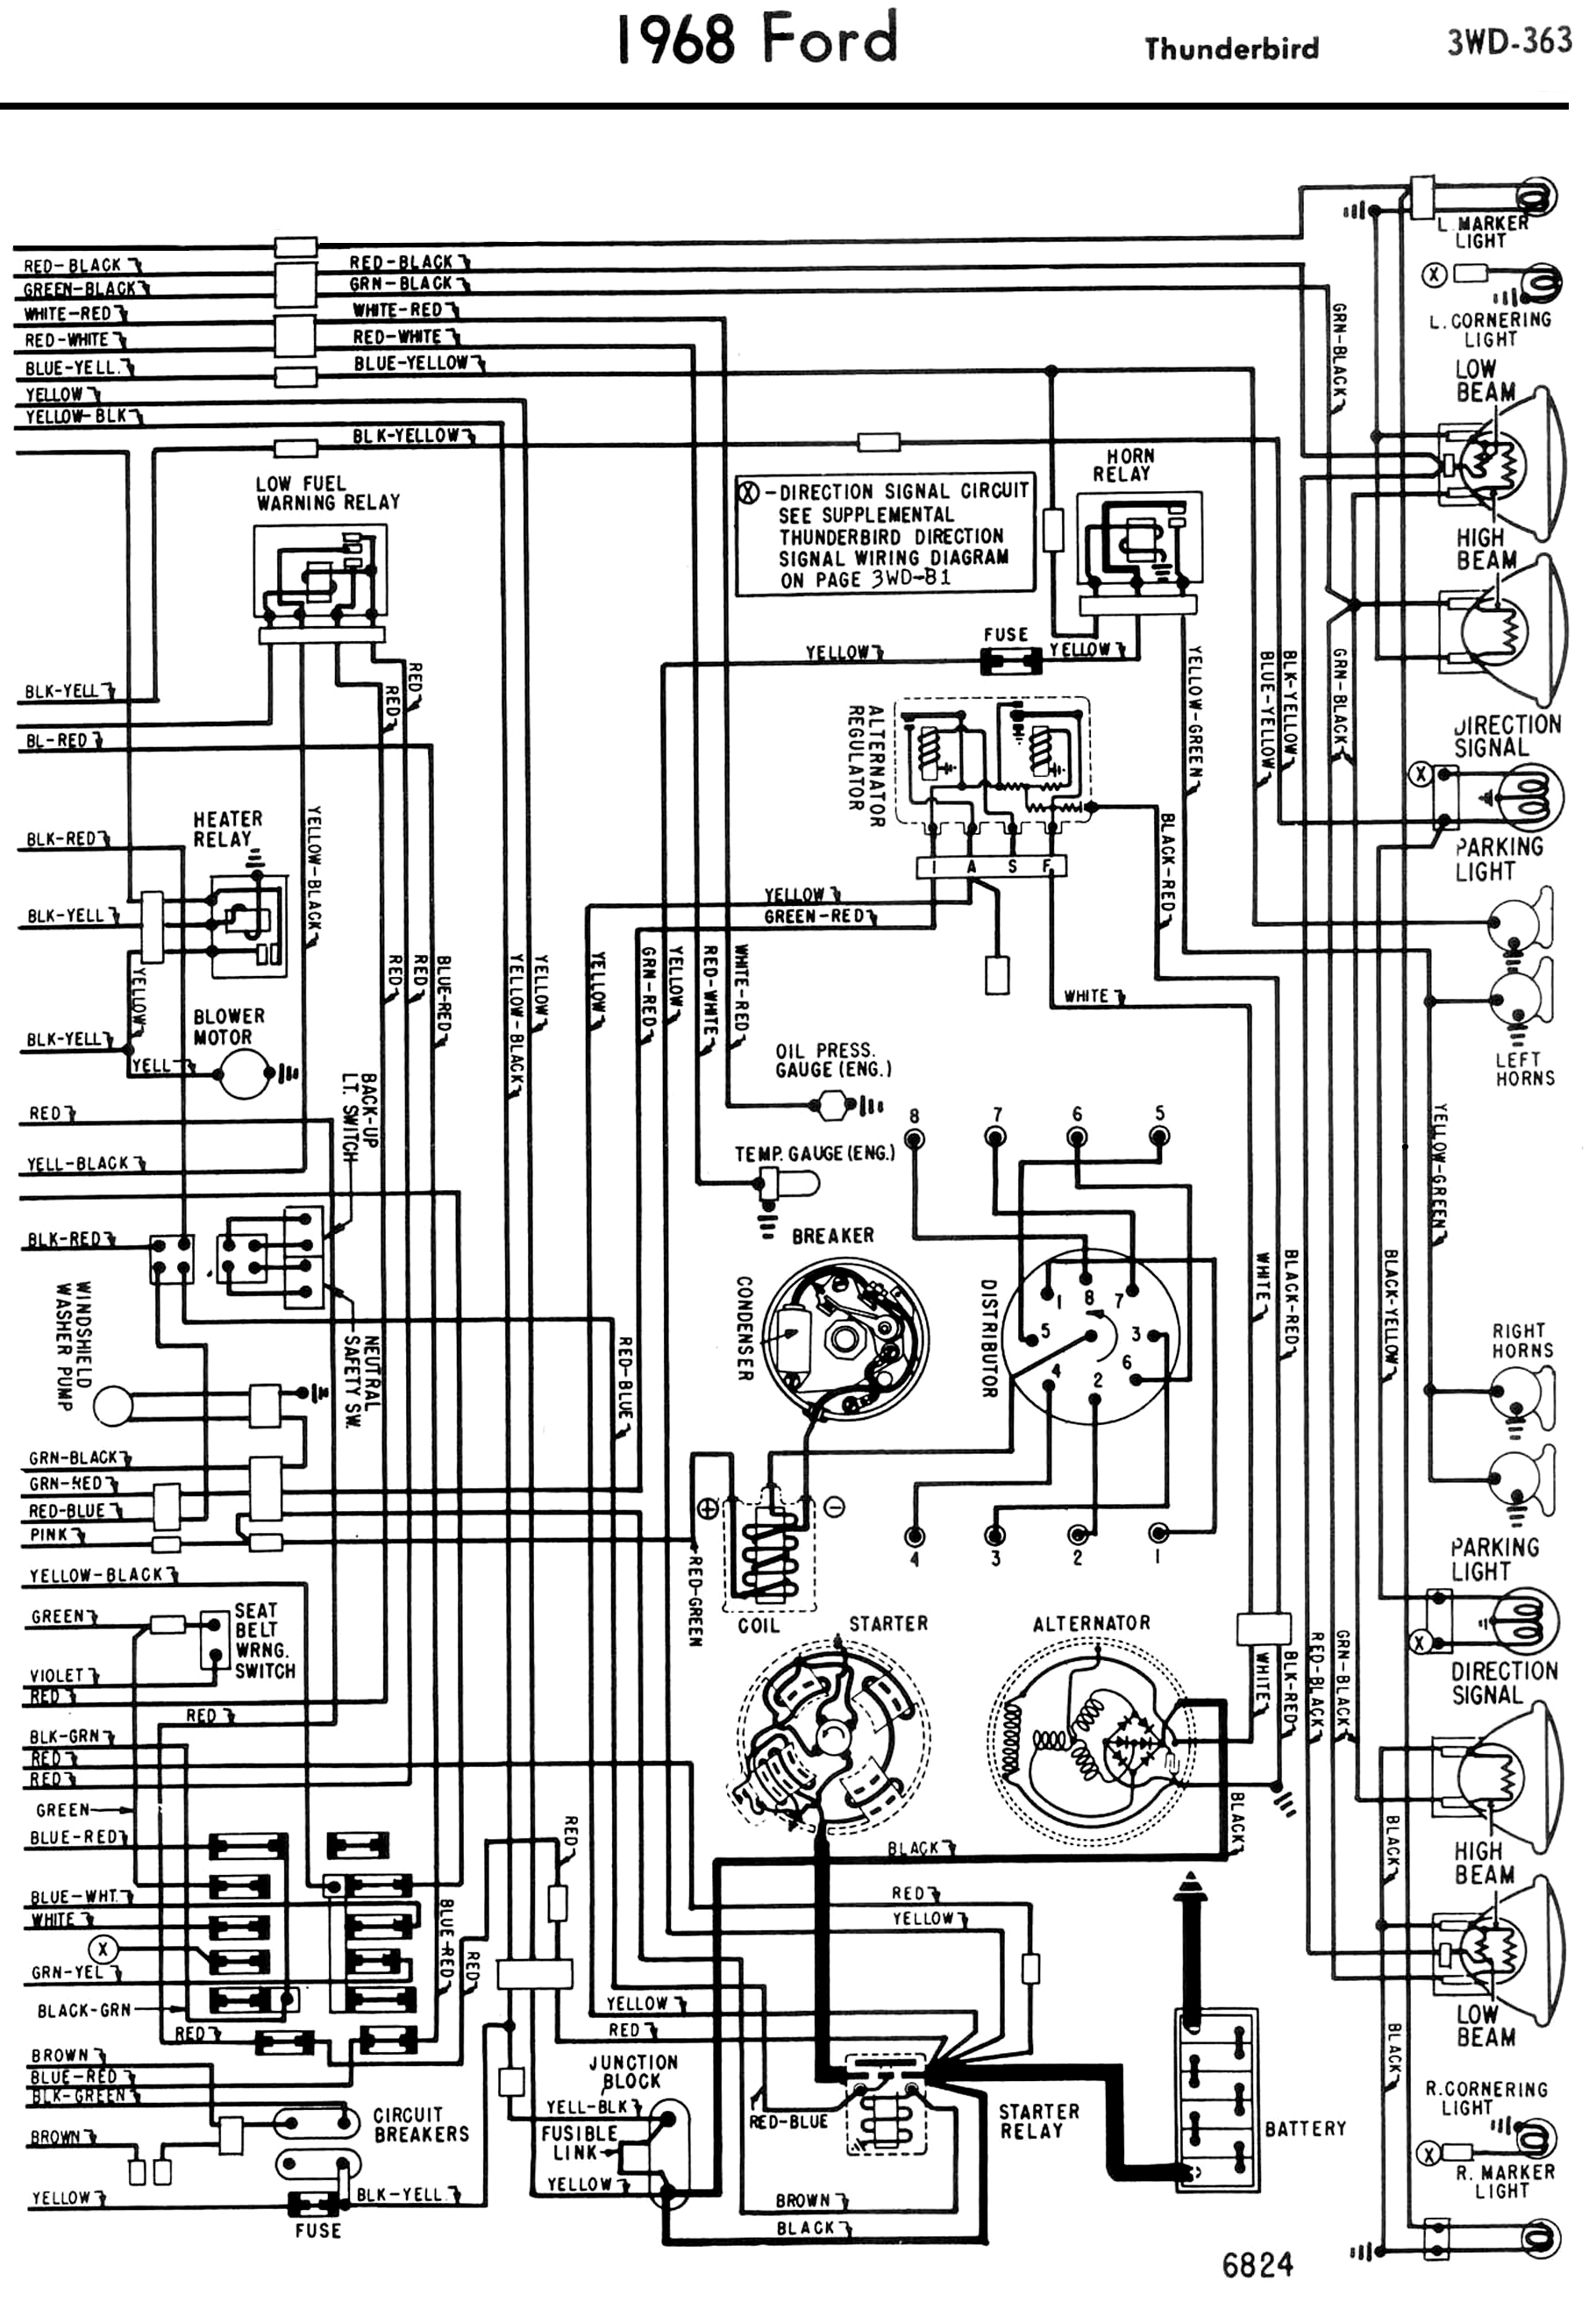 68_wiring_diagram RH 1958 68 ford electrical schematics 1965 thunderbird alternator wiring diagram at soozxer.org